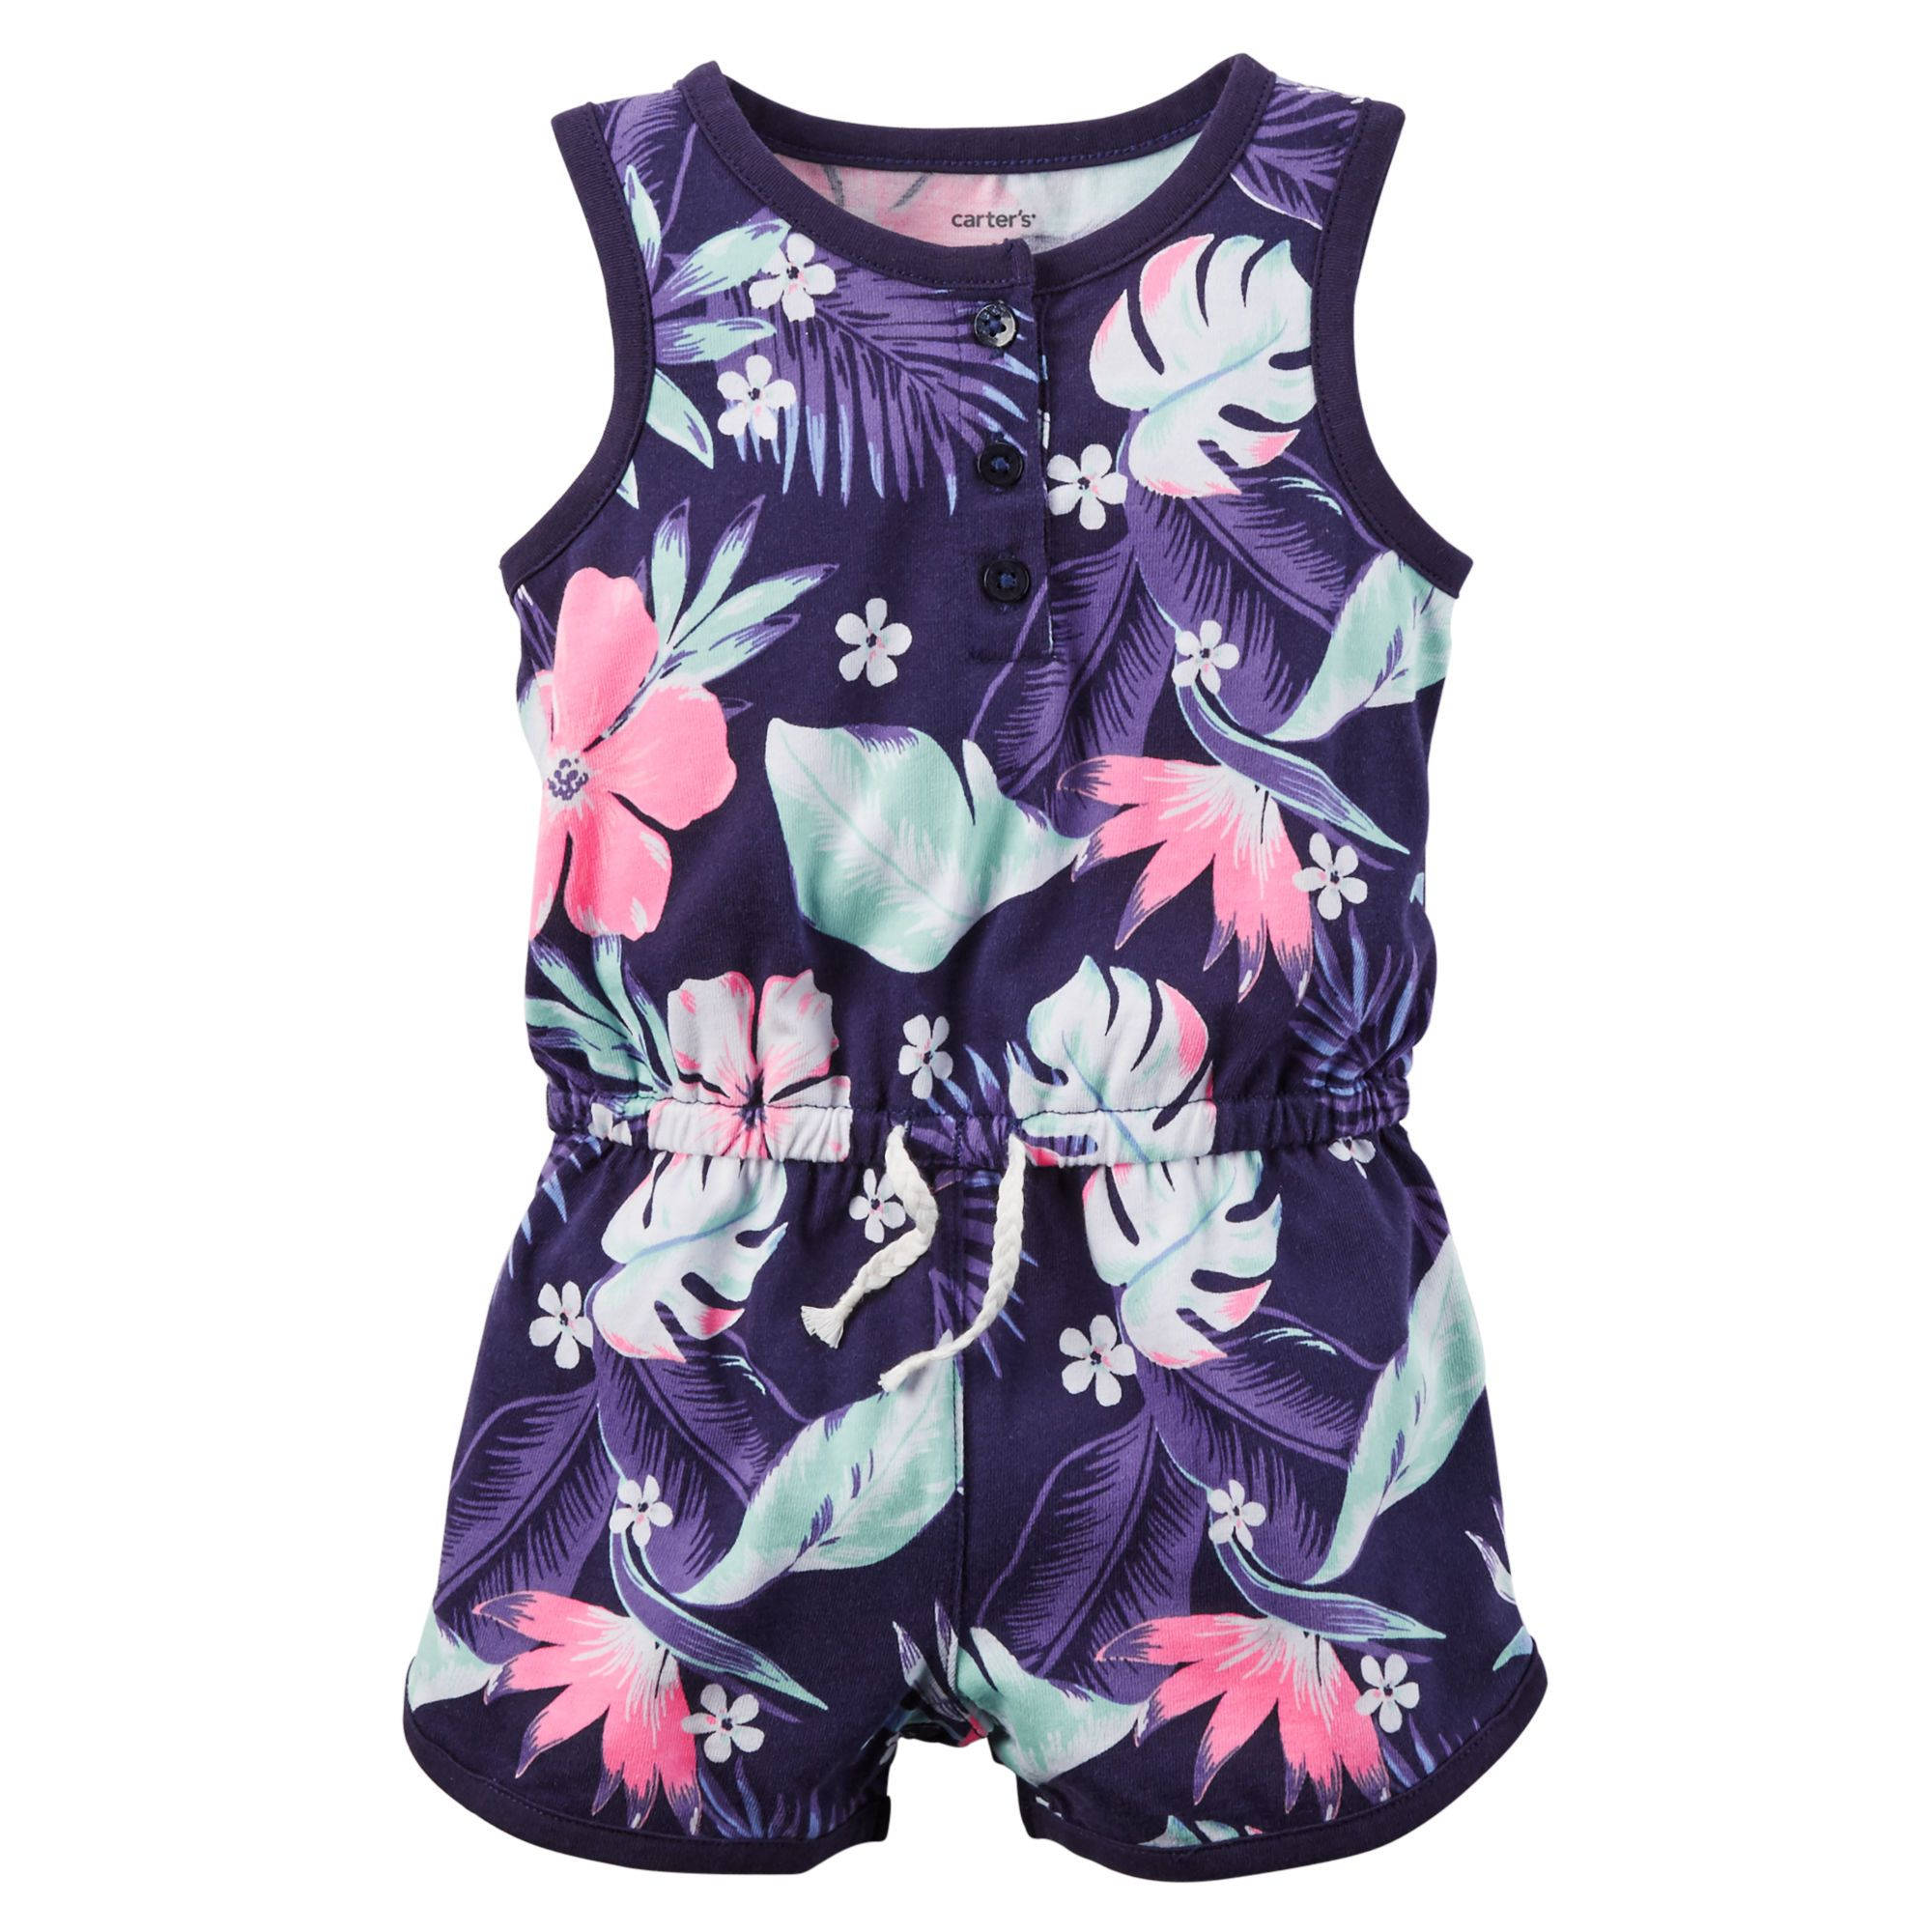 83863fc93 Printed Jersey Romper   Future children   Carters baby girl, Baby ...